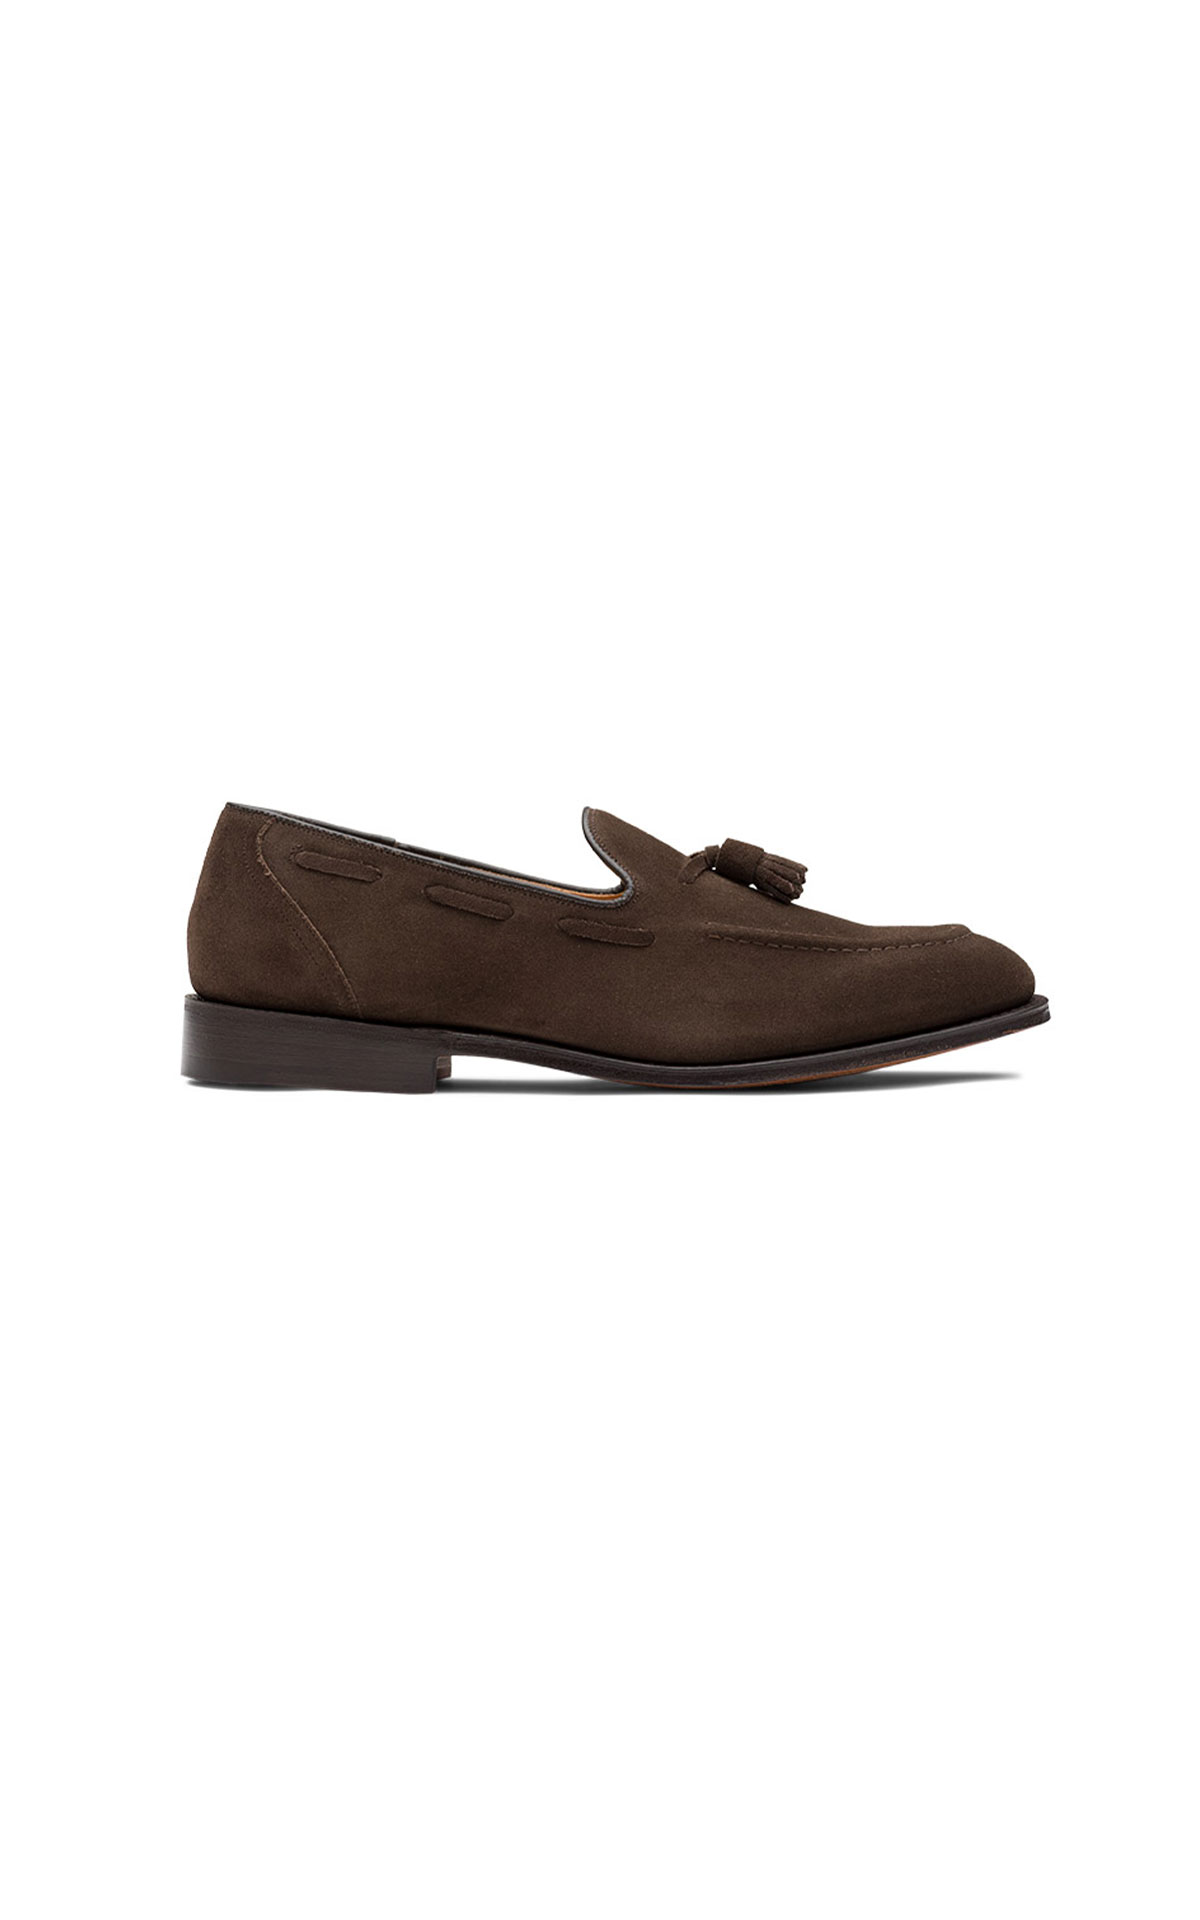 Church's Kingsley suede brown from Bicester Village